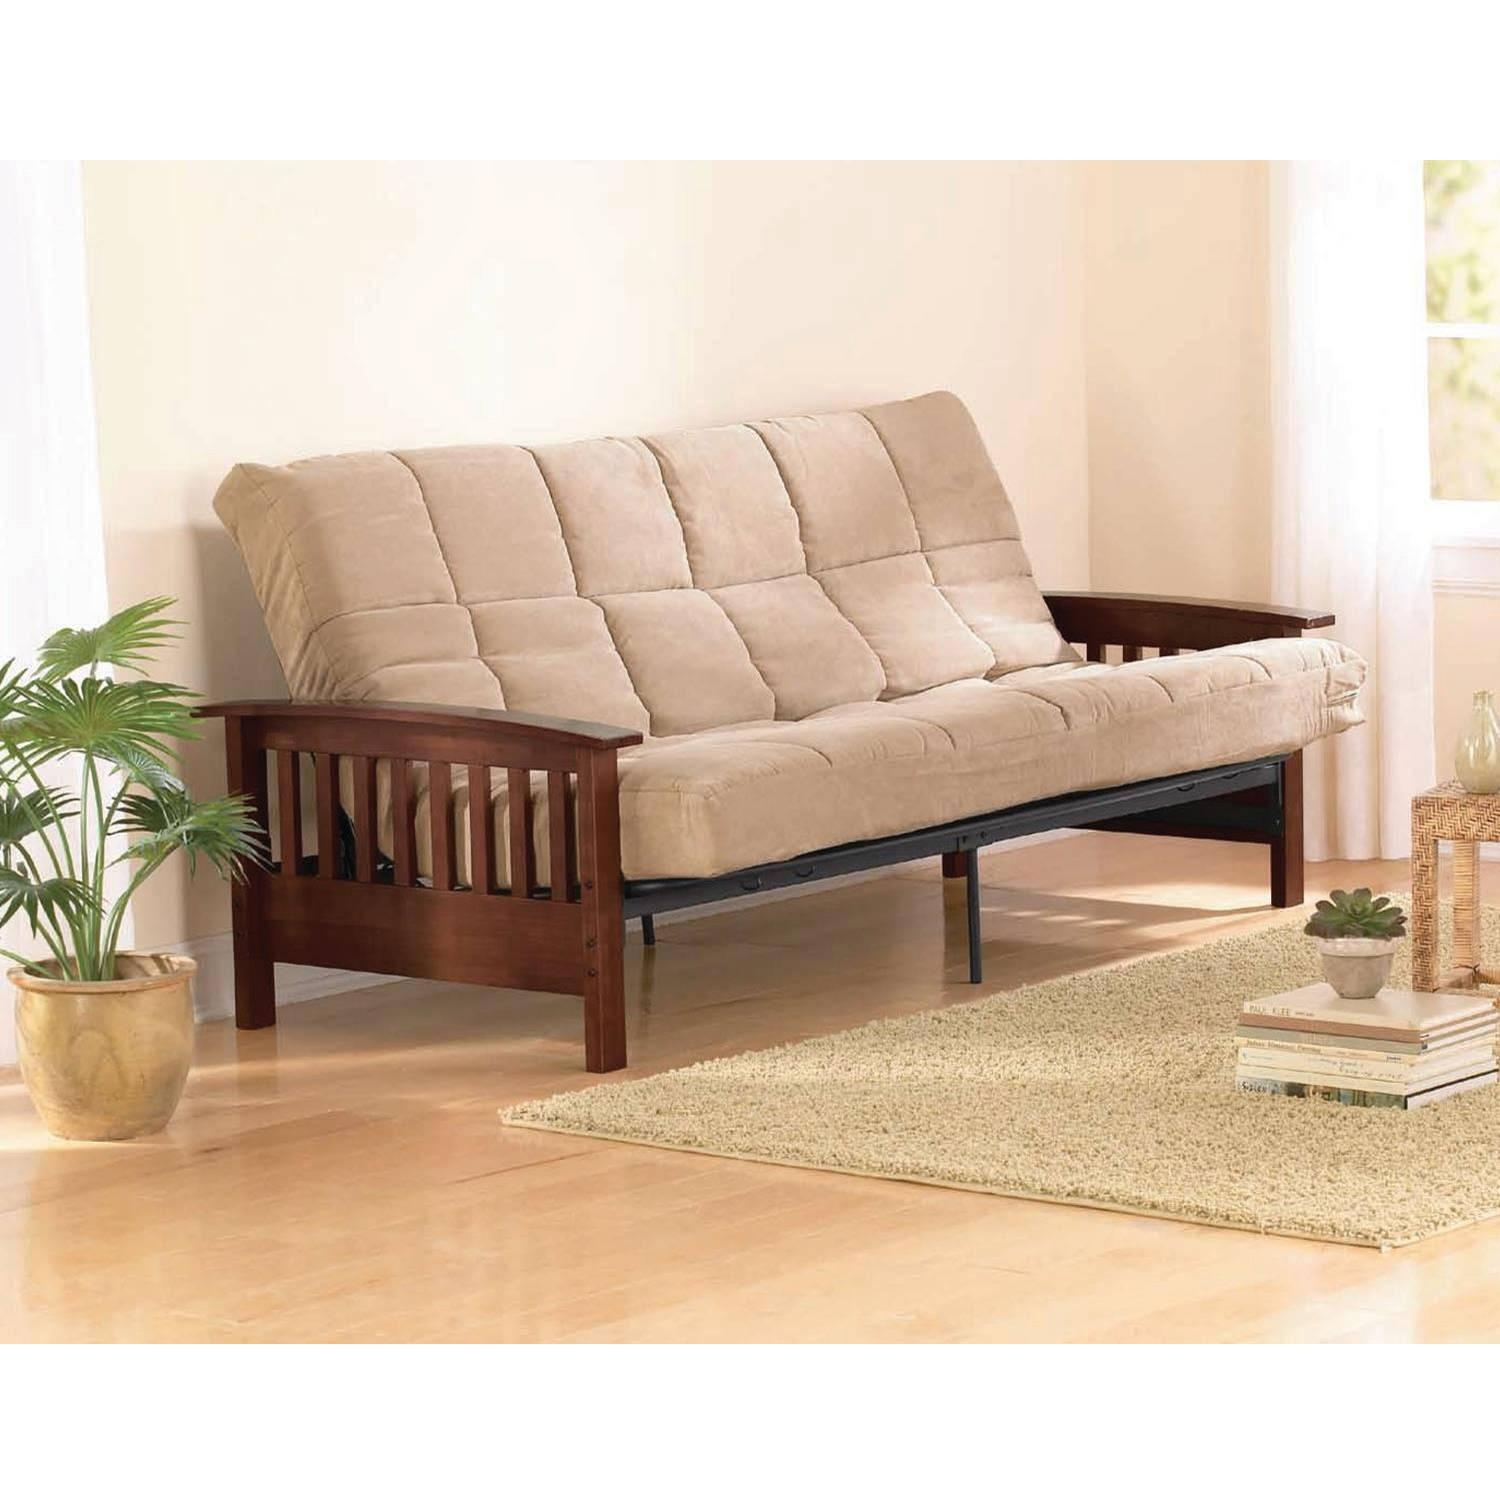 Atherton Home Taylor Convertible Futon Sofa Bed – Walmart With Regard To Convertible Futon Sofa Beds (Image 1 of 20)